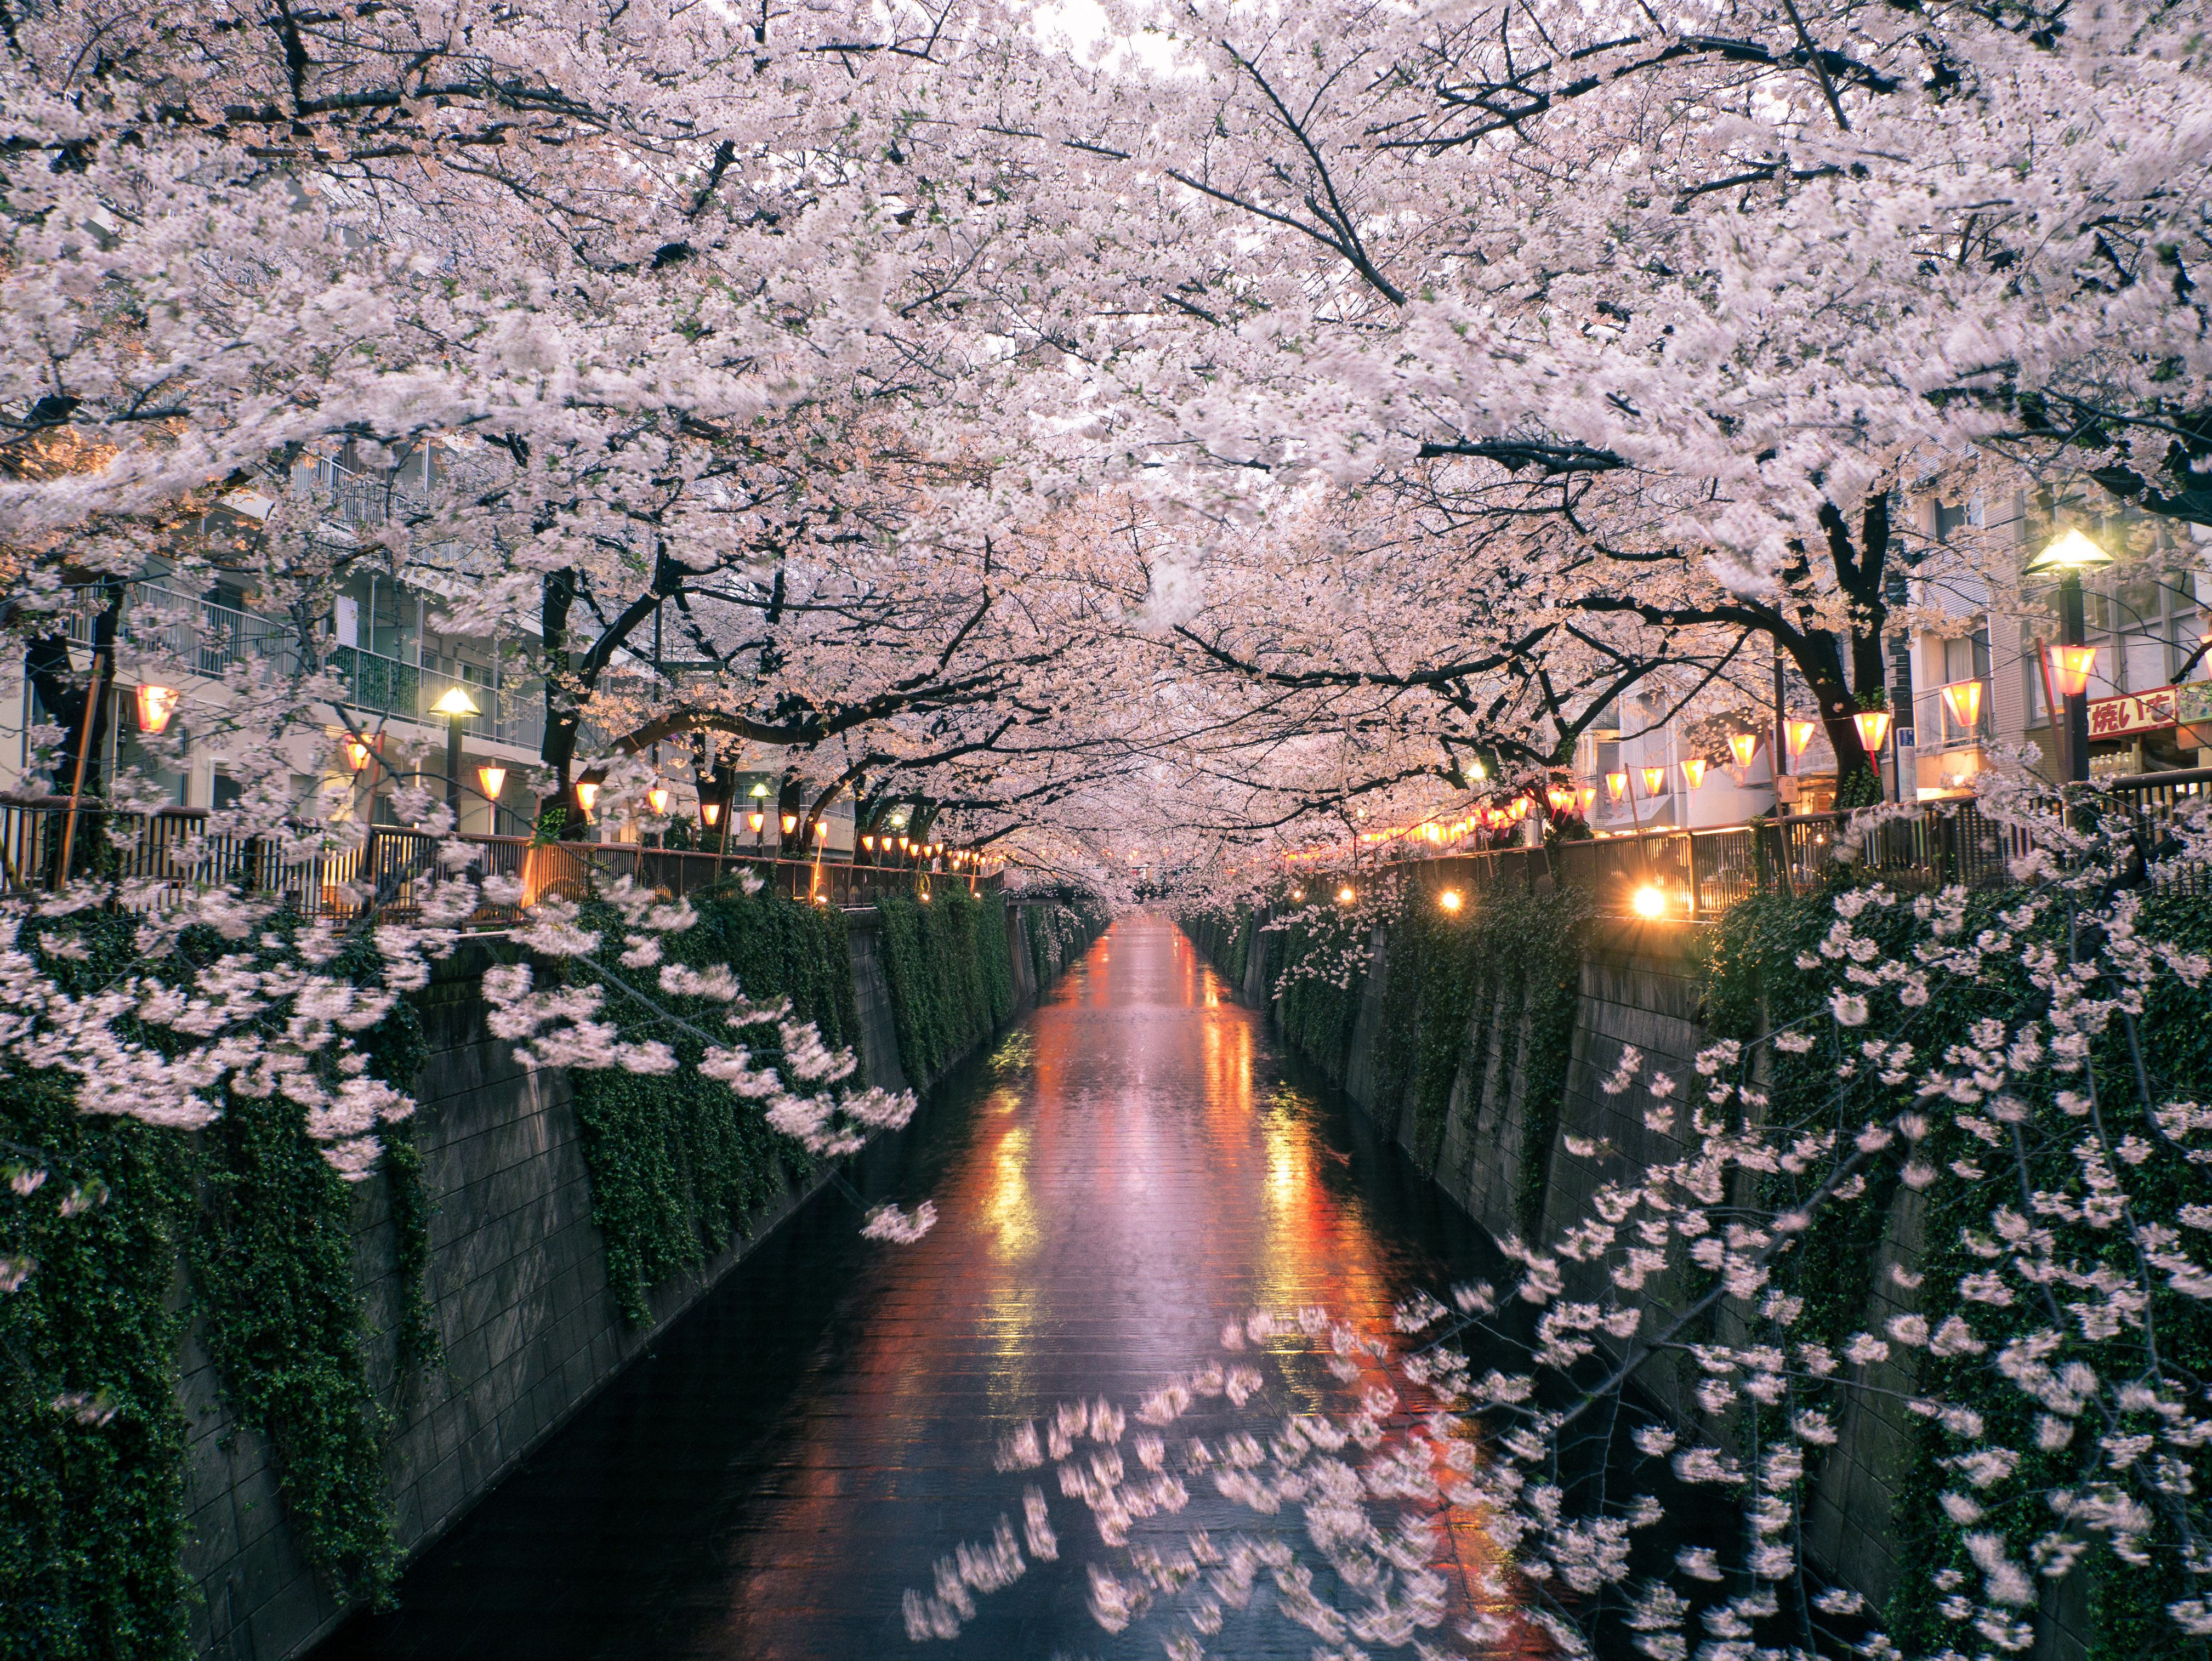 Pin By Teddy Wars On Travel Japan Cherry Blossom Festival Cherry Blossom Japan Cherry Blossom Festival